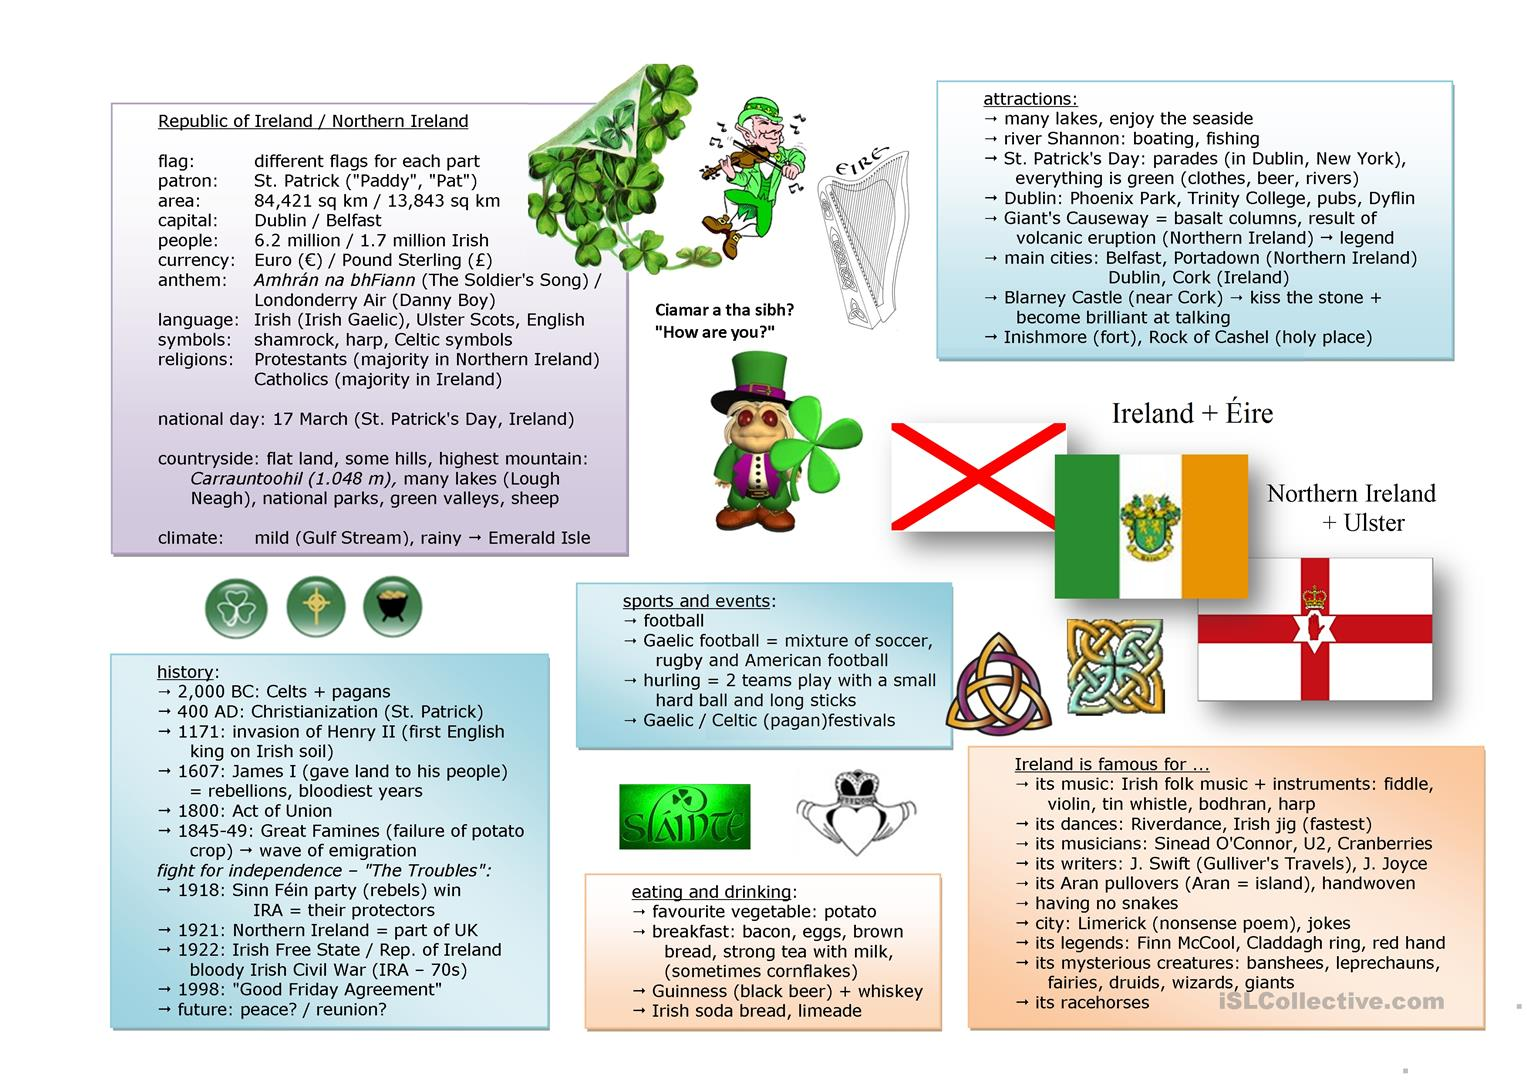 mind map Ireland - English ESL Worksheets  Ad Map Of British Isles on map of iceland, map of iberian peninsula, map of united kingdom, map of wales, map of britain, map of europe, map of scotland, map of london, map of czech republic, map of france, map of haiti, map of germany, map of england, map of norway, map of british columbia, map of middle east, map of china, map of carpathian mountains, map of north carolina, map of south america,